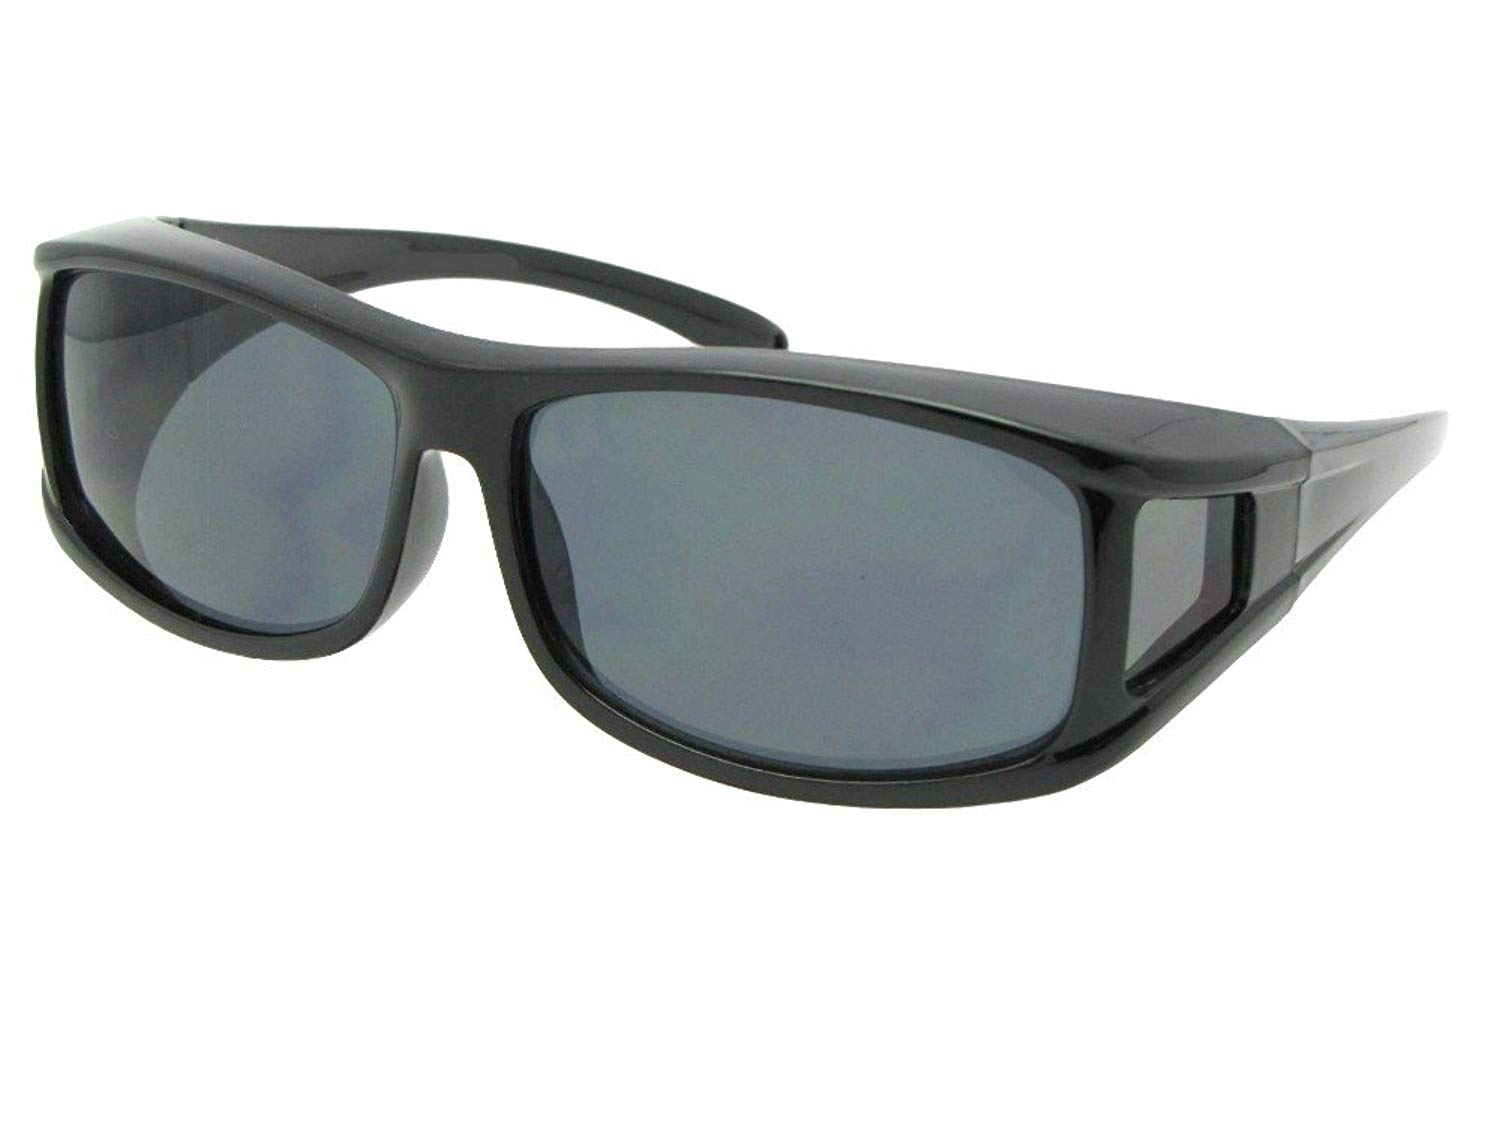 5f15ed6929 Get Quotations · Medium Non Polarized Wrap Around Fit Over Sunglasses Style  F11